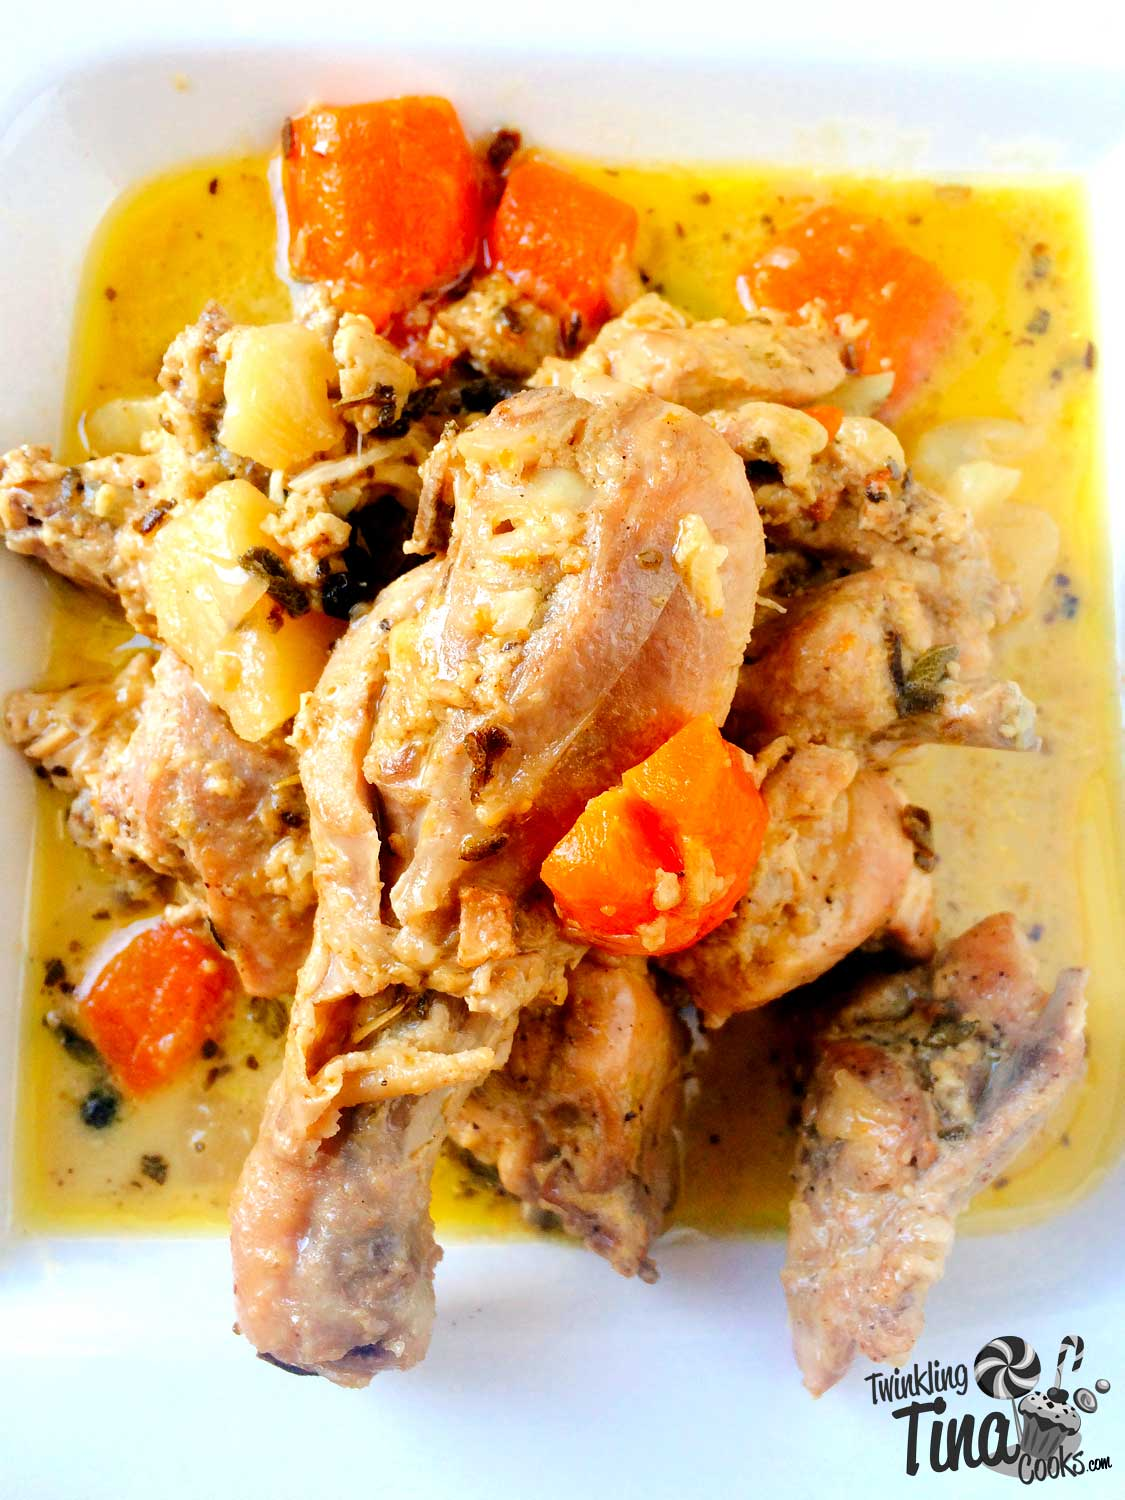 chicken-stew-recipes-old-fashioned-chicken-stew-recipes-slow-cooker-chicken-stew-recipes-chicken-and-milk-stew-recipes-milk-recipes-4